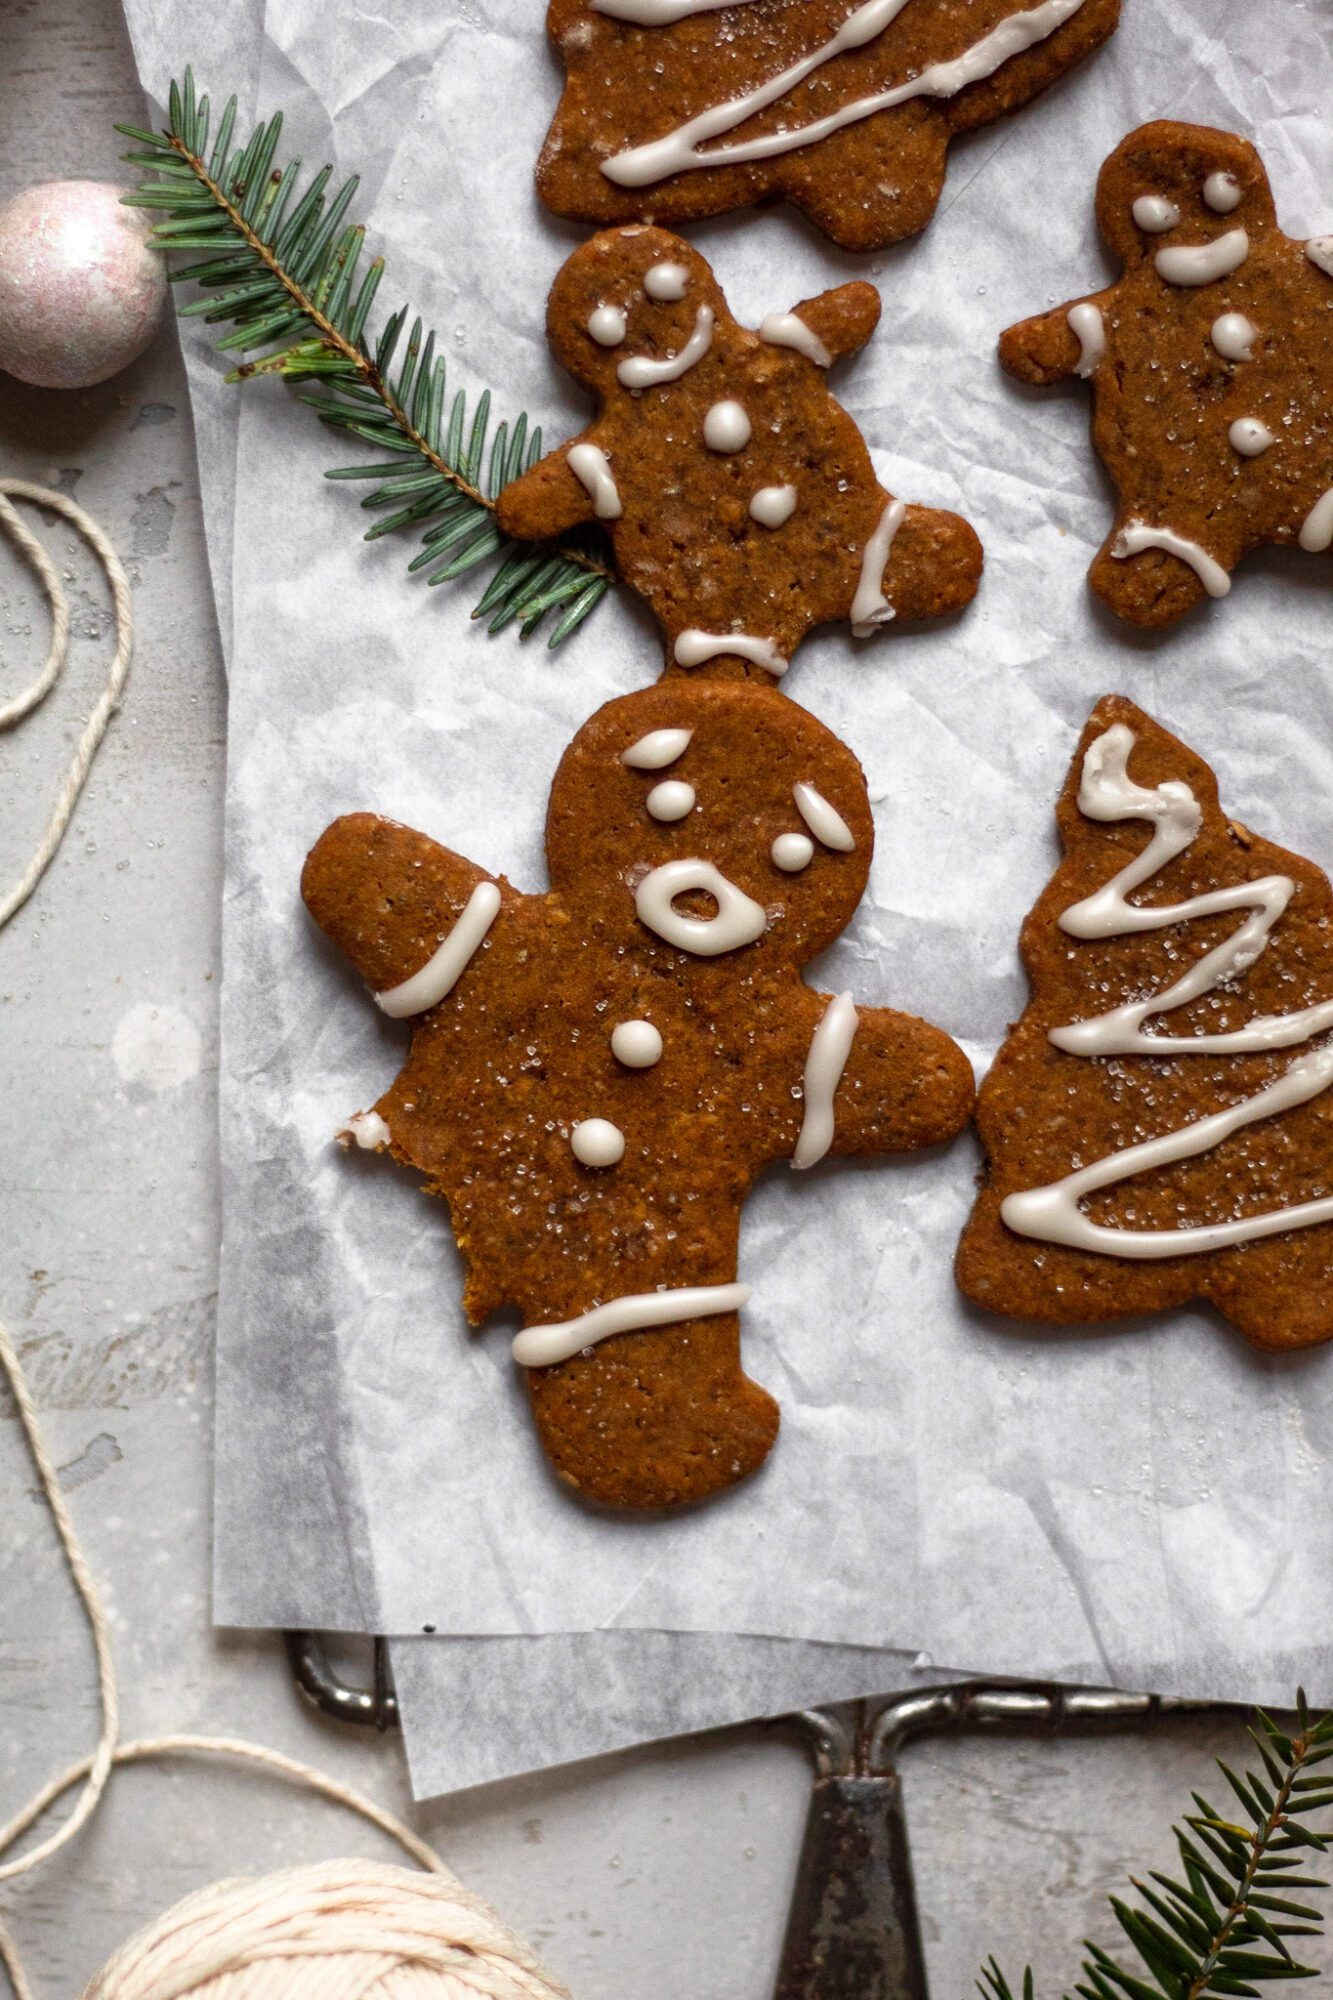 gingerbread man with missing leg